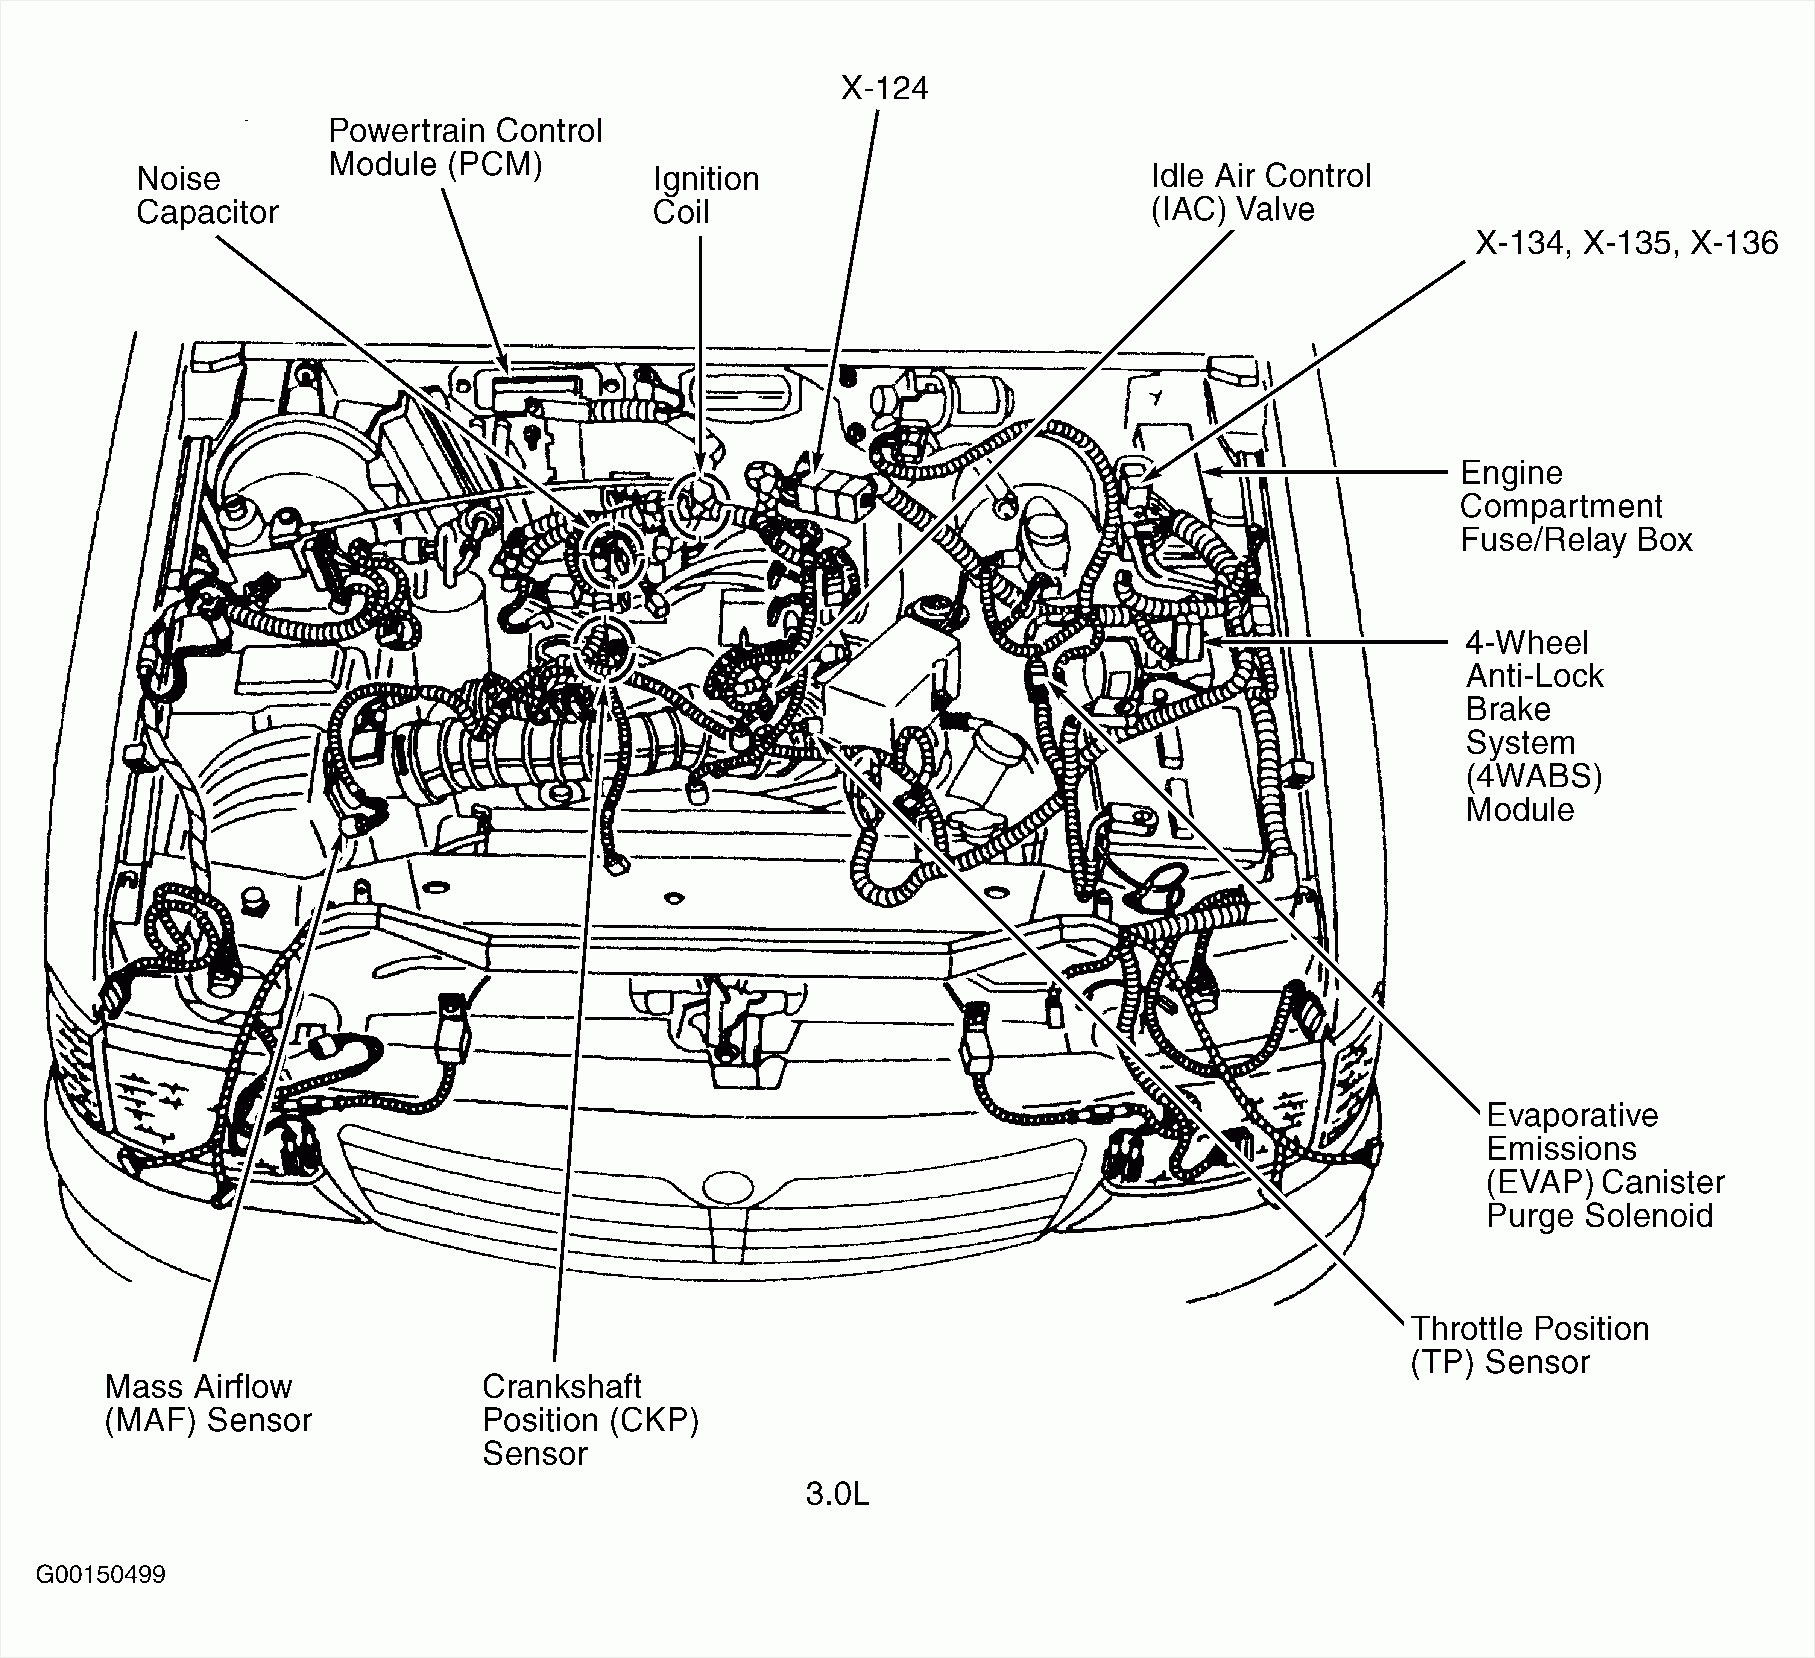 1996 chevy s10 vacuum diagram ford f 150 4 6 engine diagram 2008s10 4 3 engine diagram blog wiring diagram 1996 chevy s10 vacuum diagram ford f 150 4 6 engine diagram 2008 ford